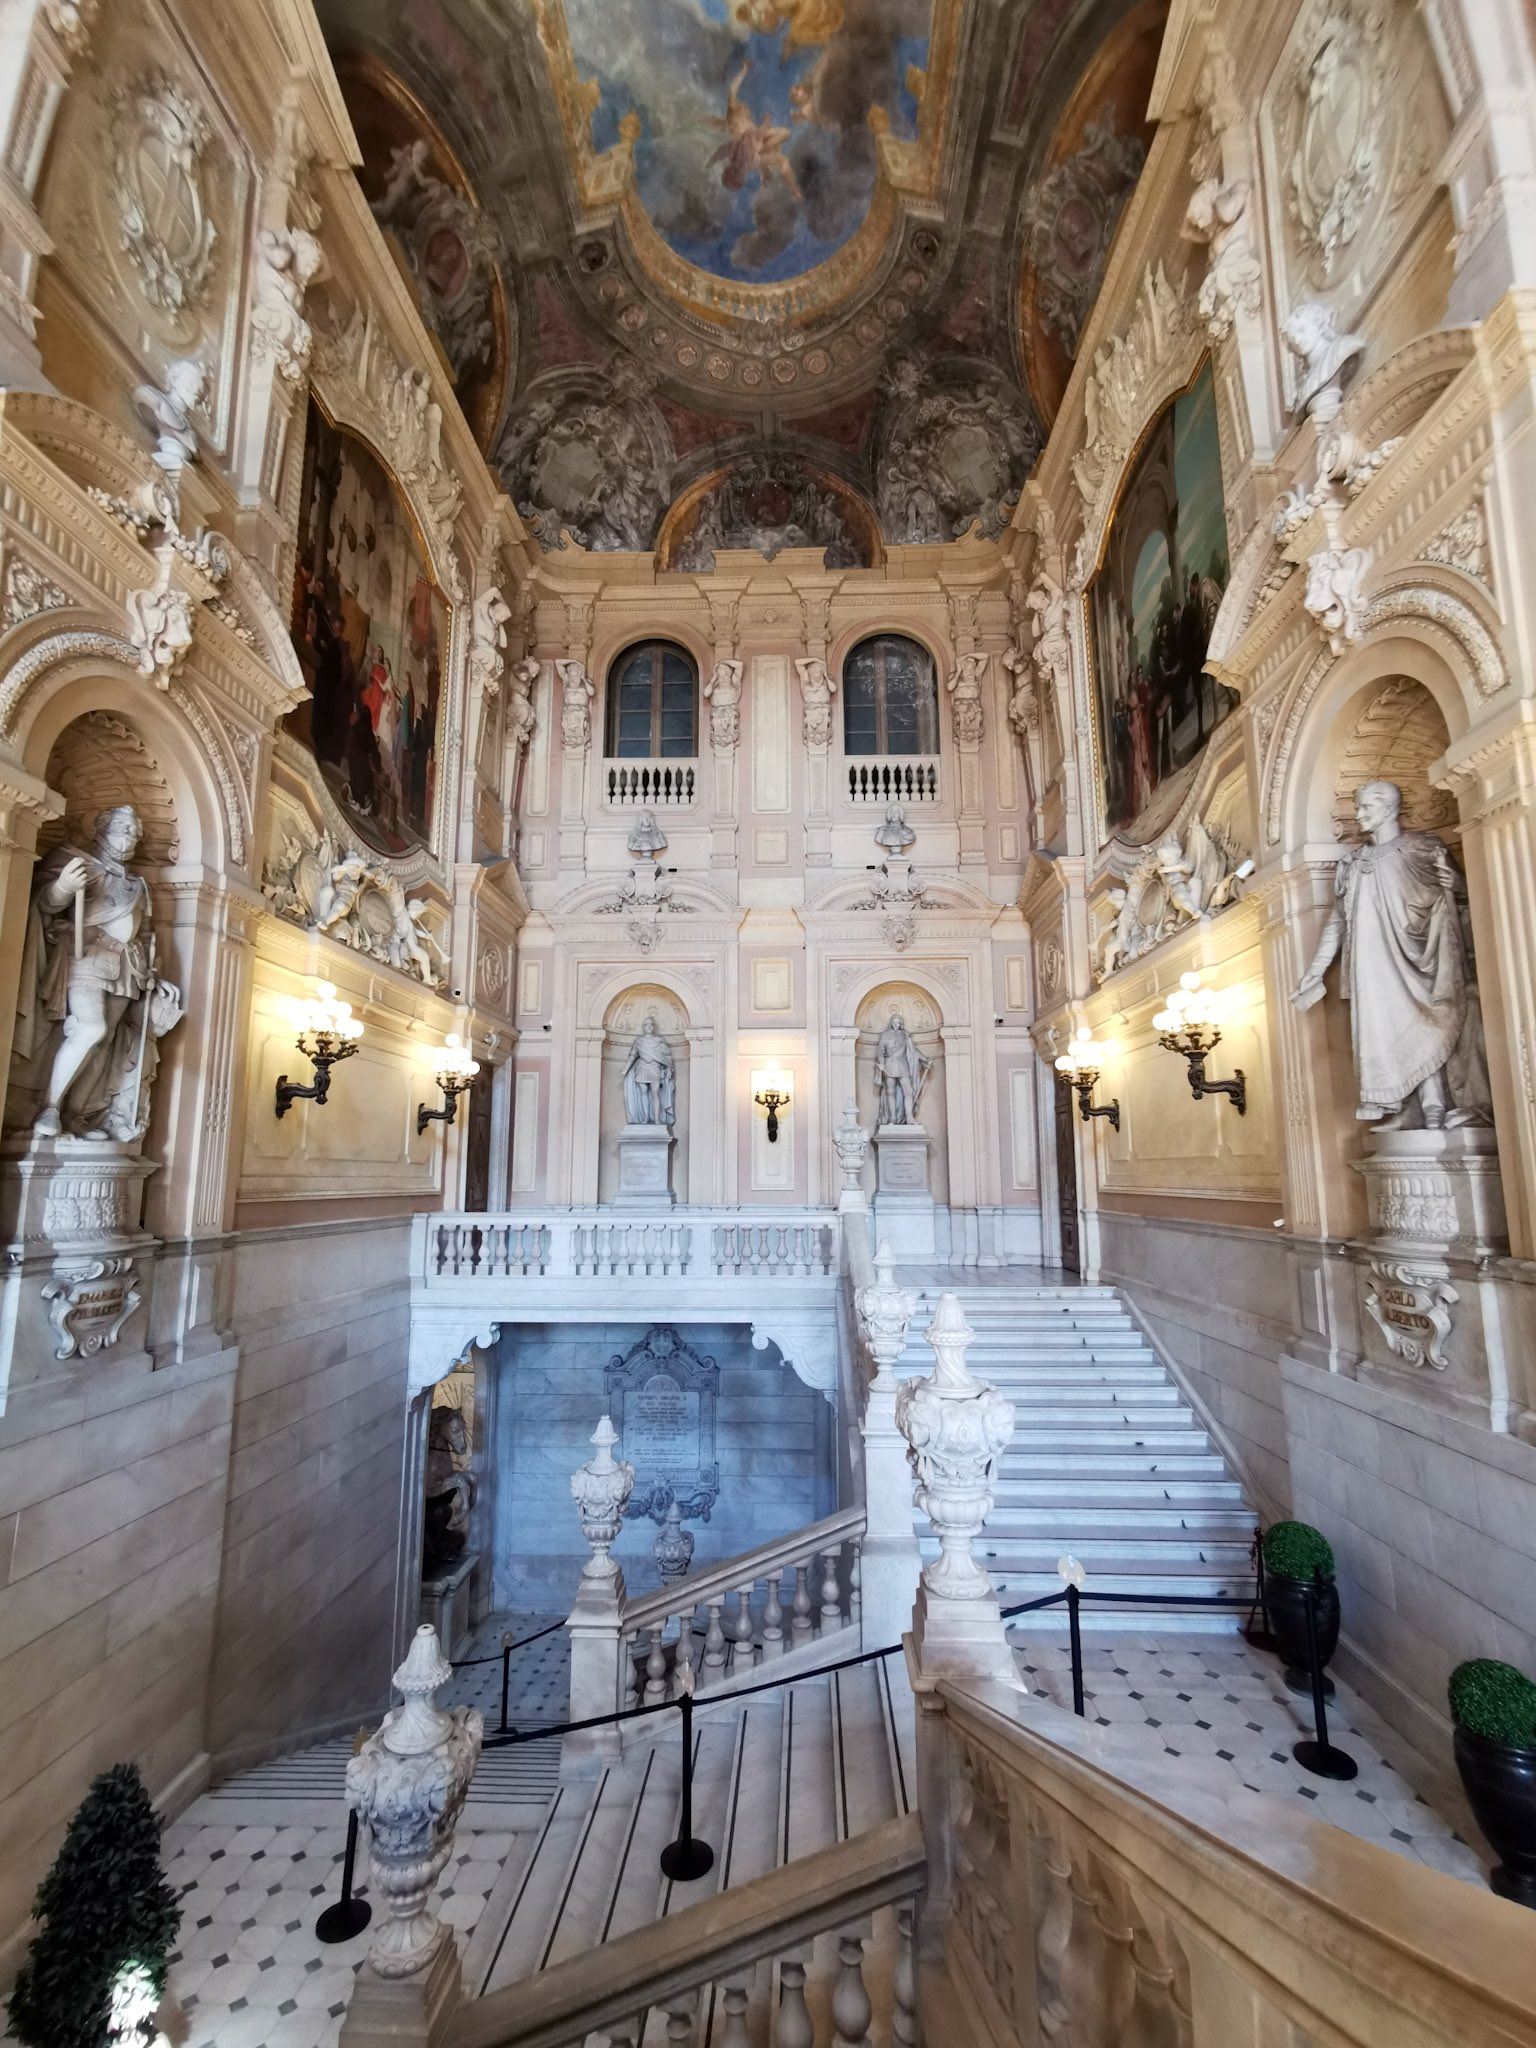 The grandiose staircase that welcomes you at the entrance of the Royal Museums in Turin